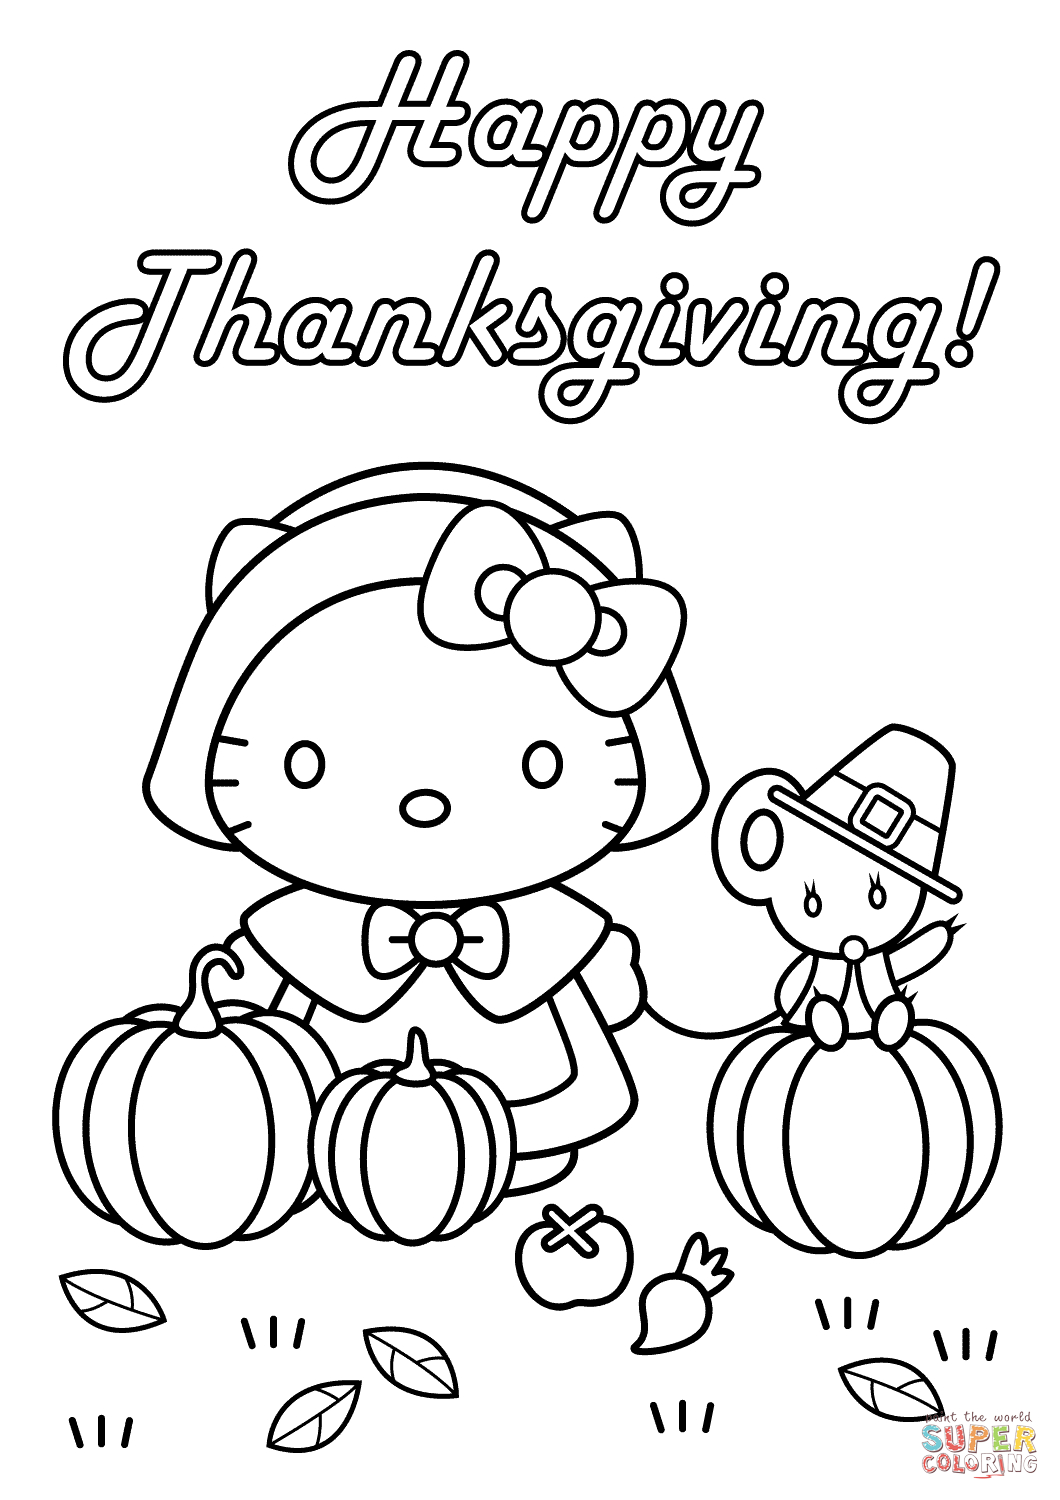 Hello Kitty Happy Thanksgiving Coloring Page   Free Printable - Free Printable Thanksgiving Coloring Pages